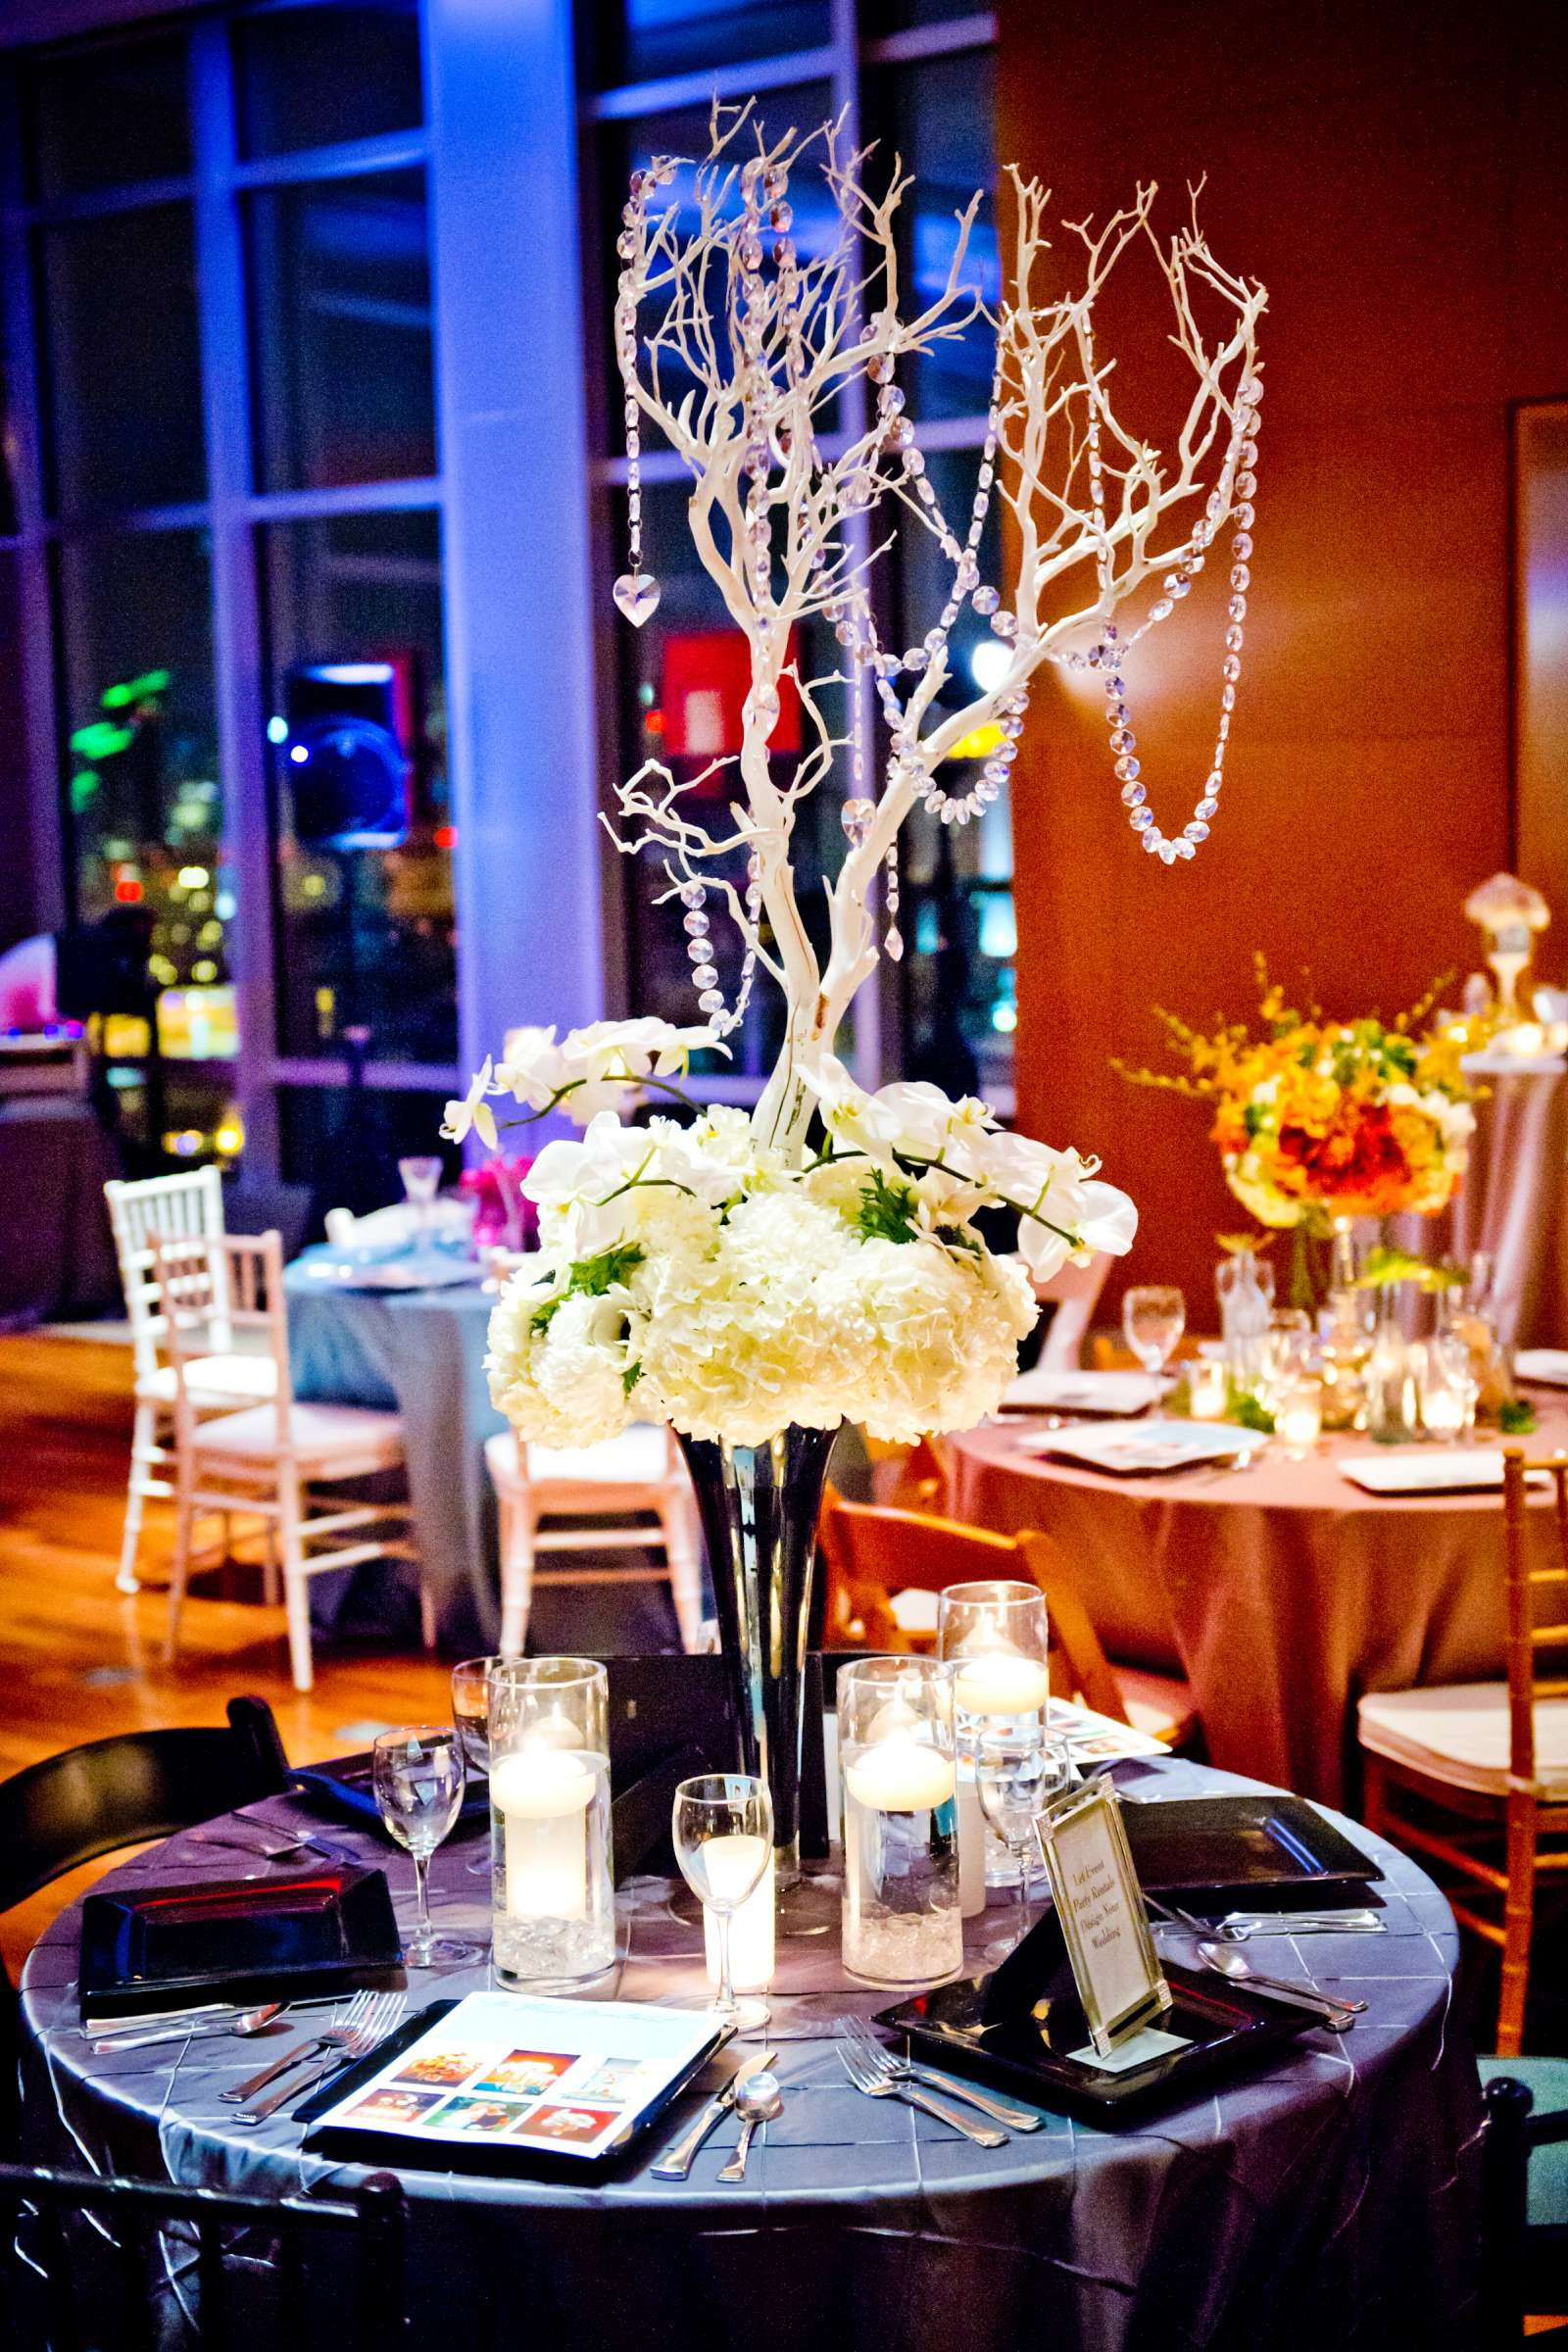 Ultimate Skybox Wedding coordinated by Creative Affairs Inc, Open House Wedding Photo #5 by True Photography